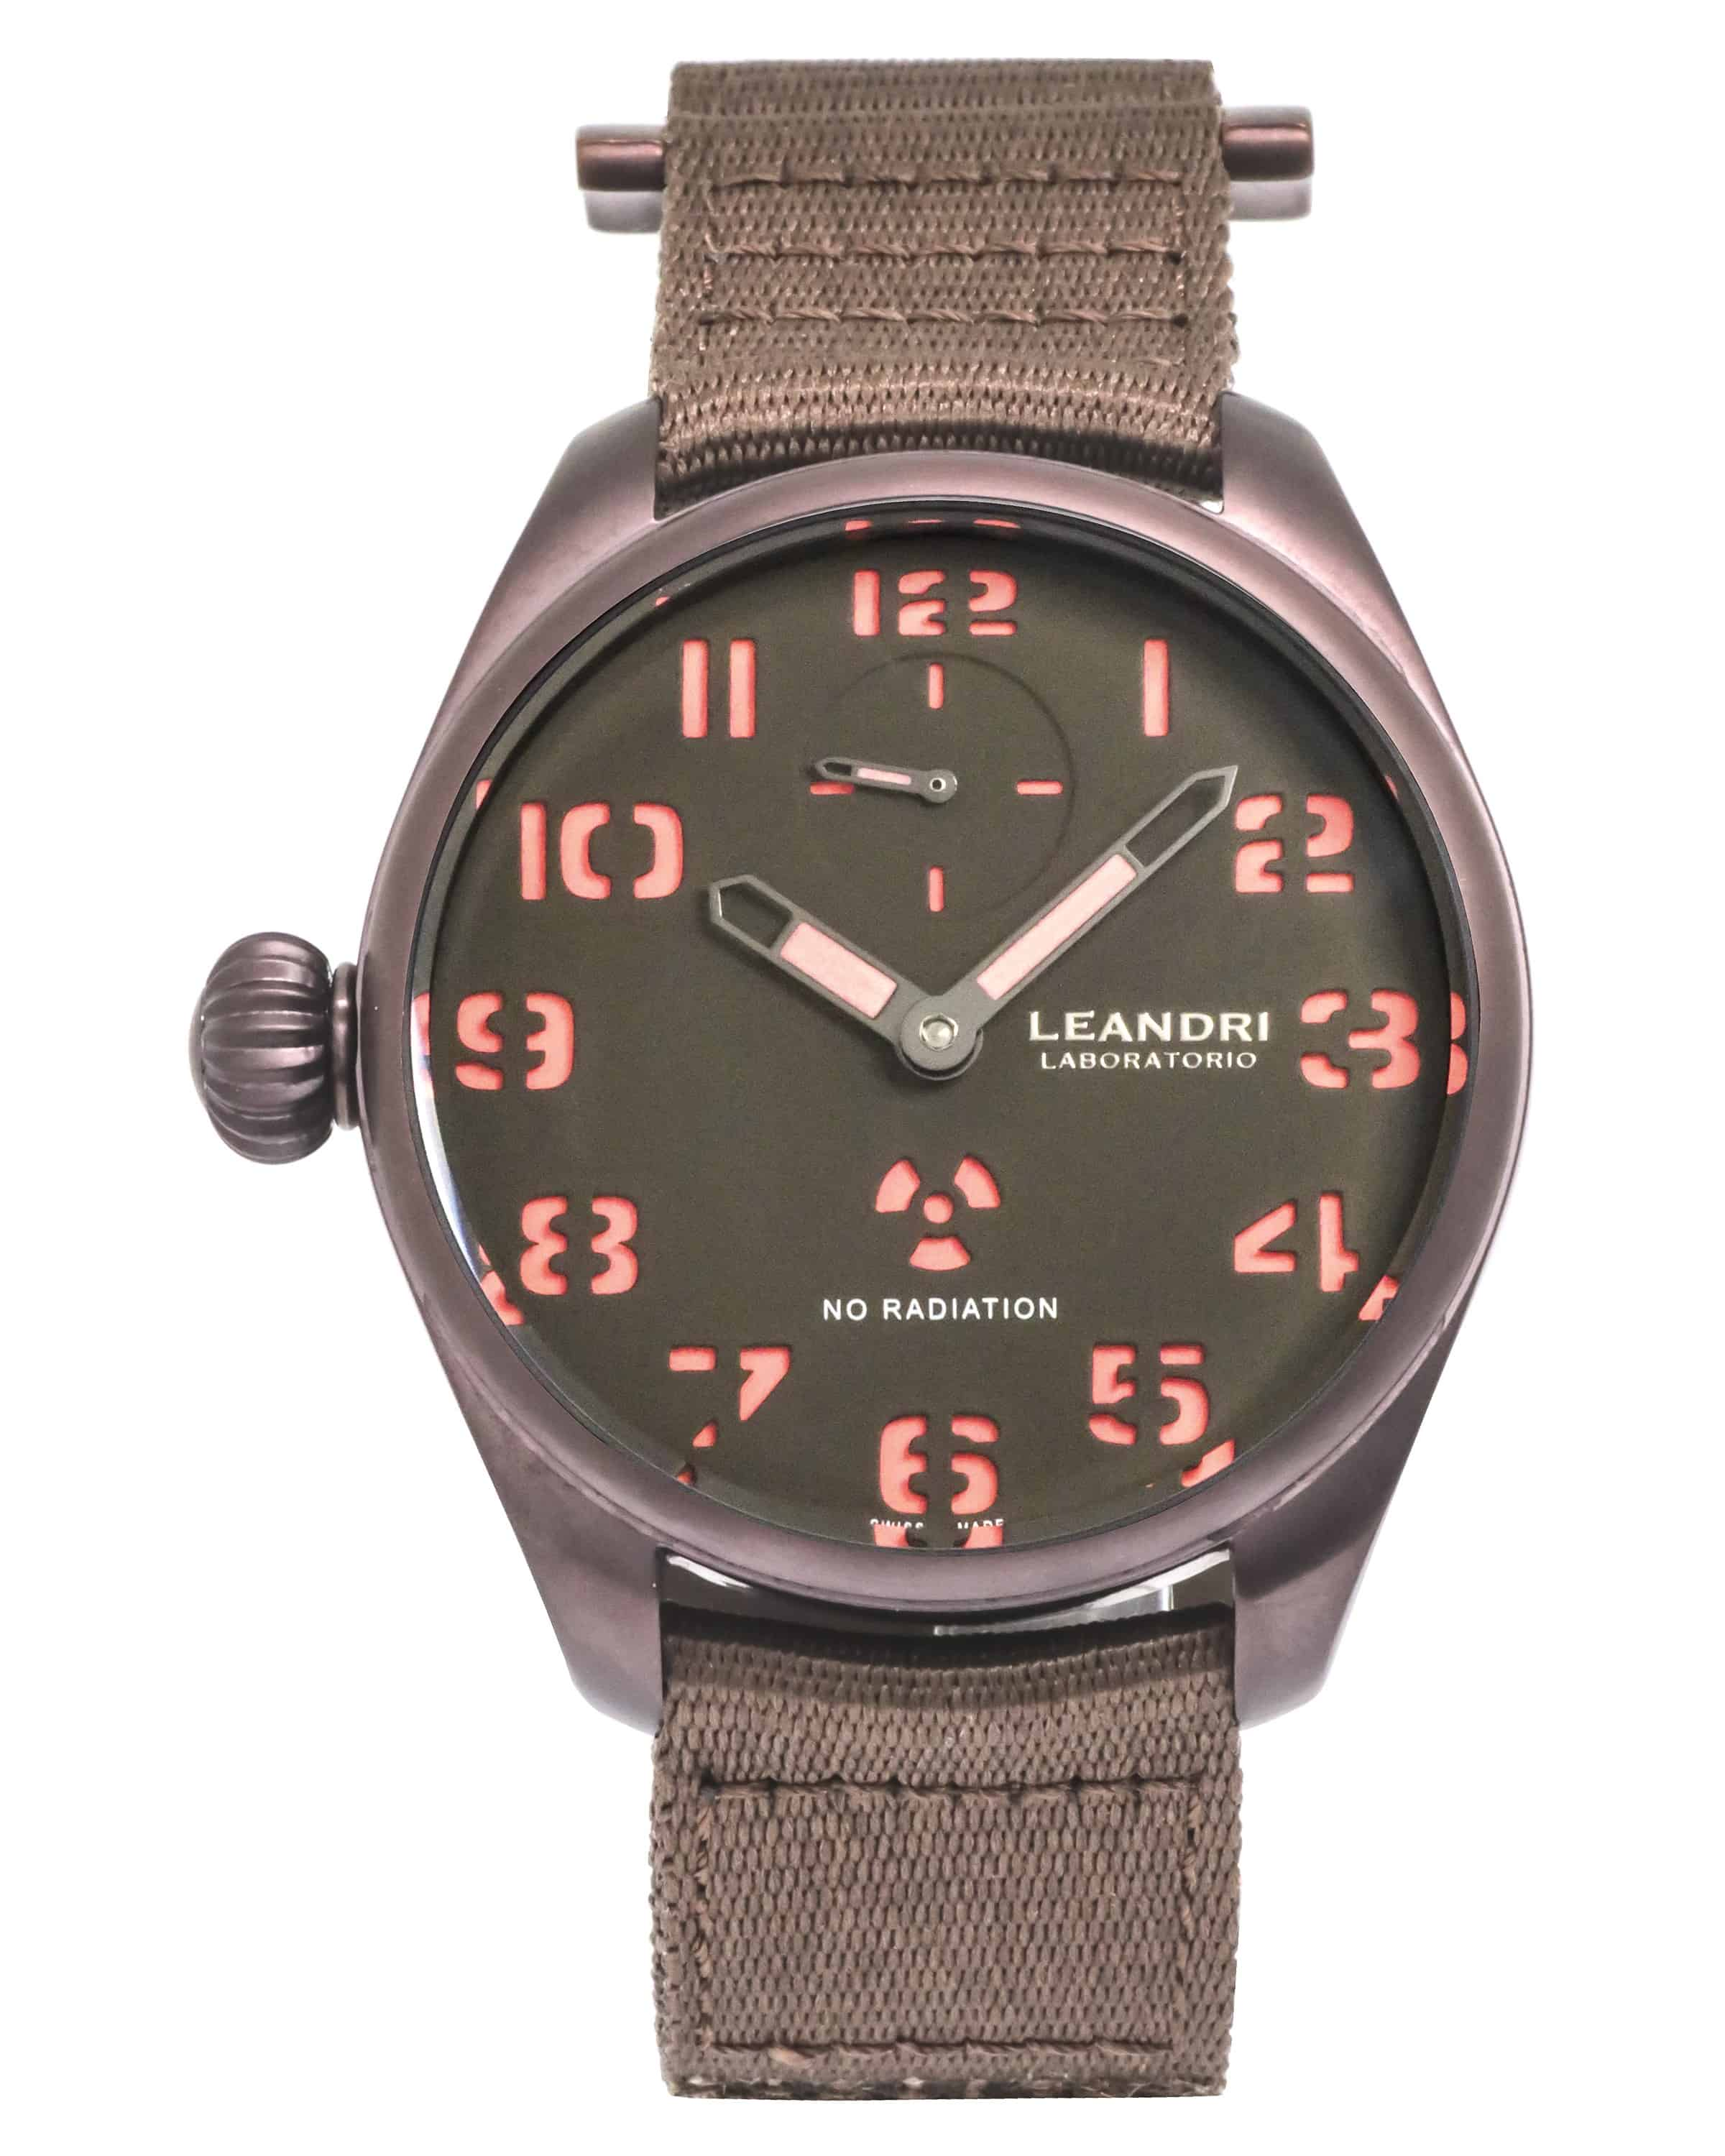 Leandri Laboratorio Manual Wind Men's Watch